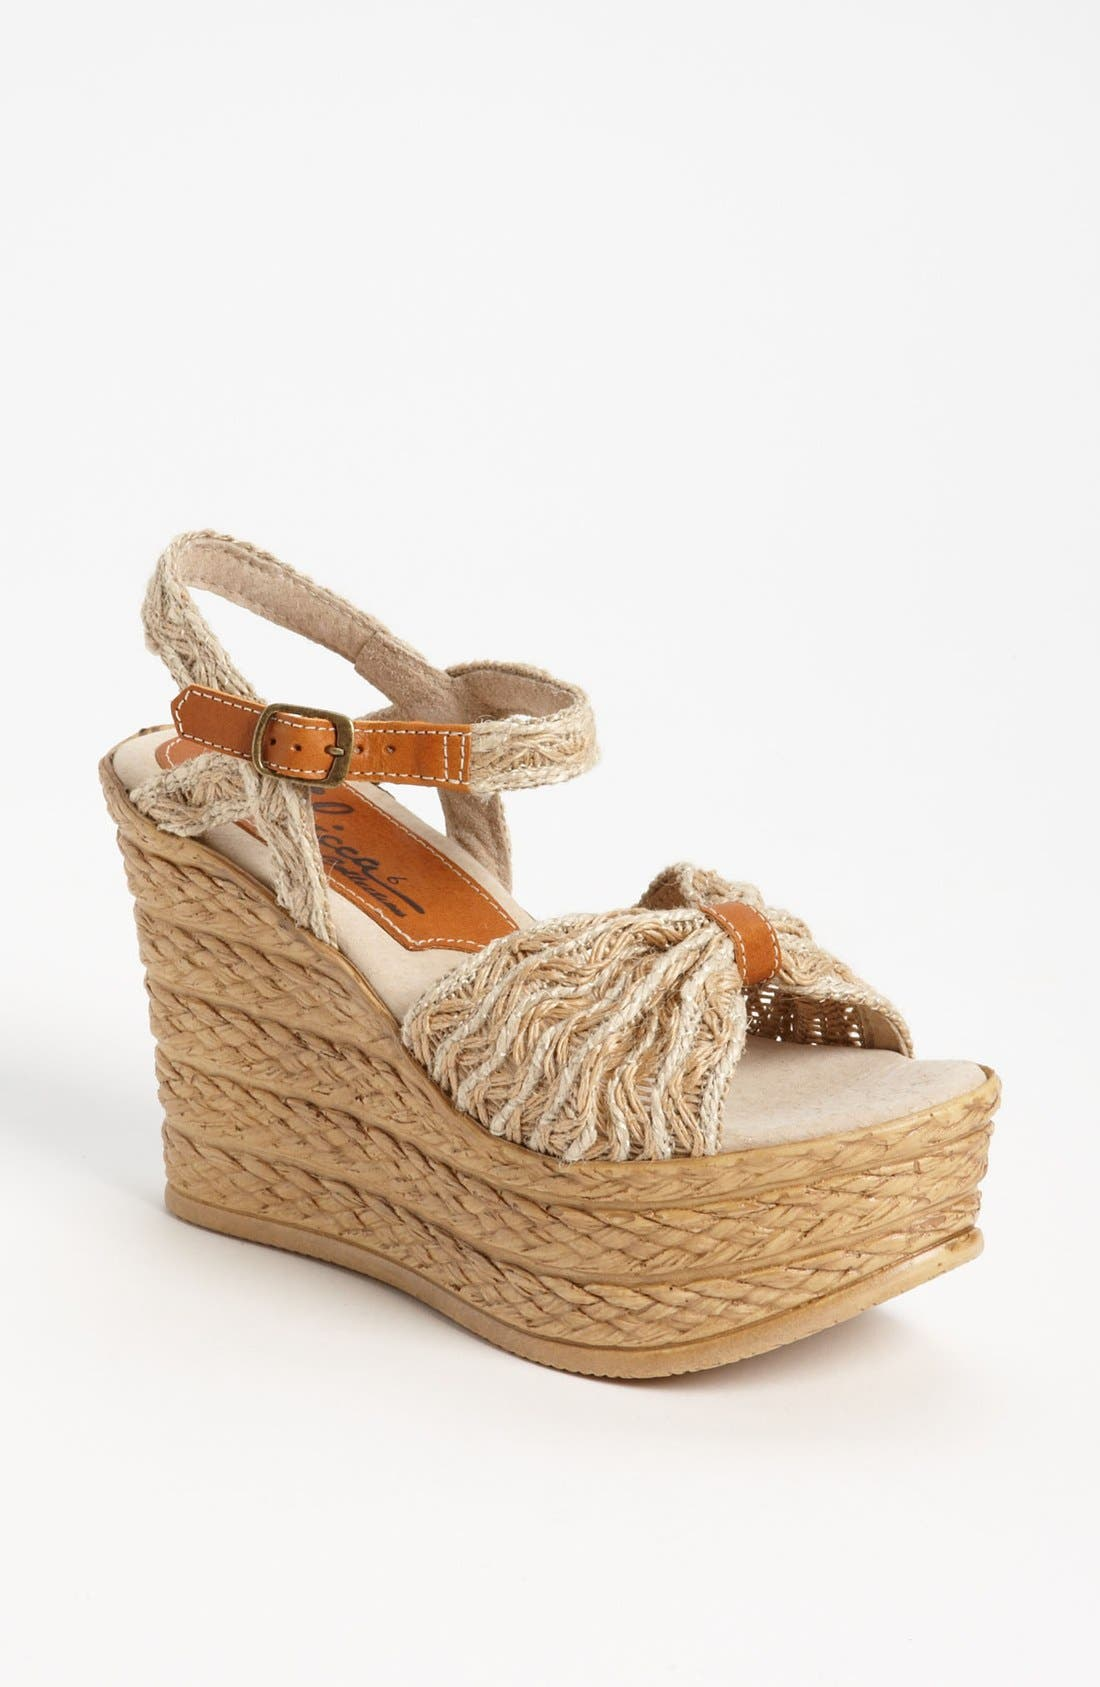 Alternate Image 1 Selected - Sbicca 'Whimsical' Wedge Sandal